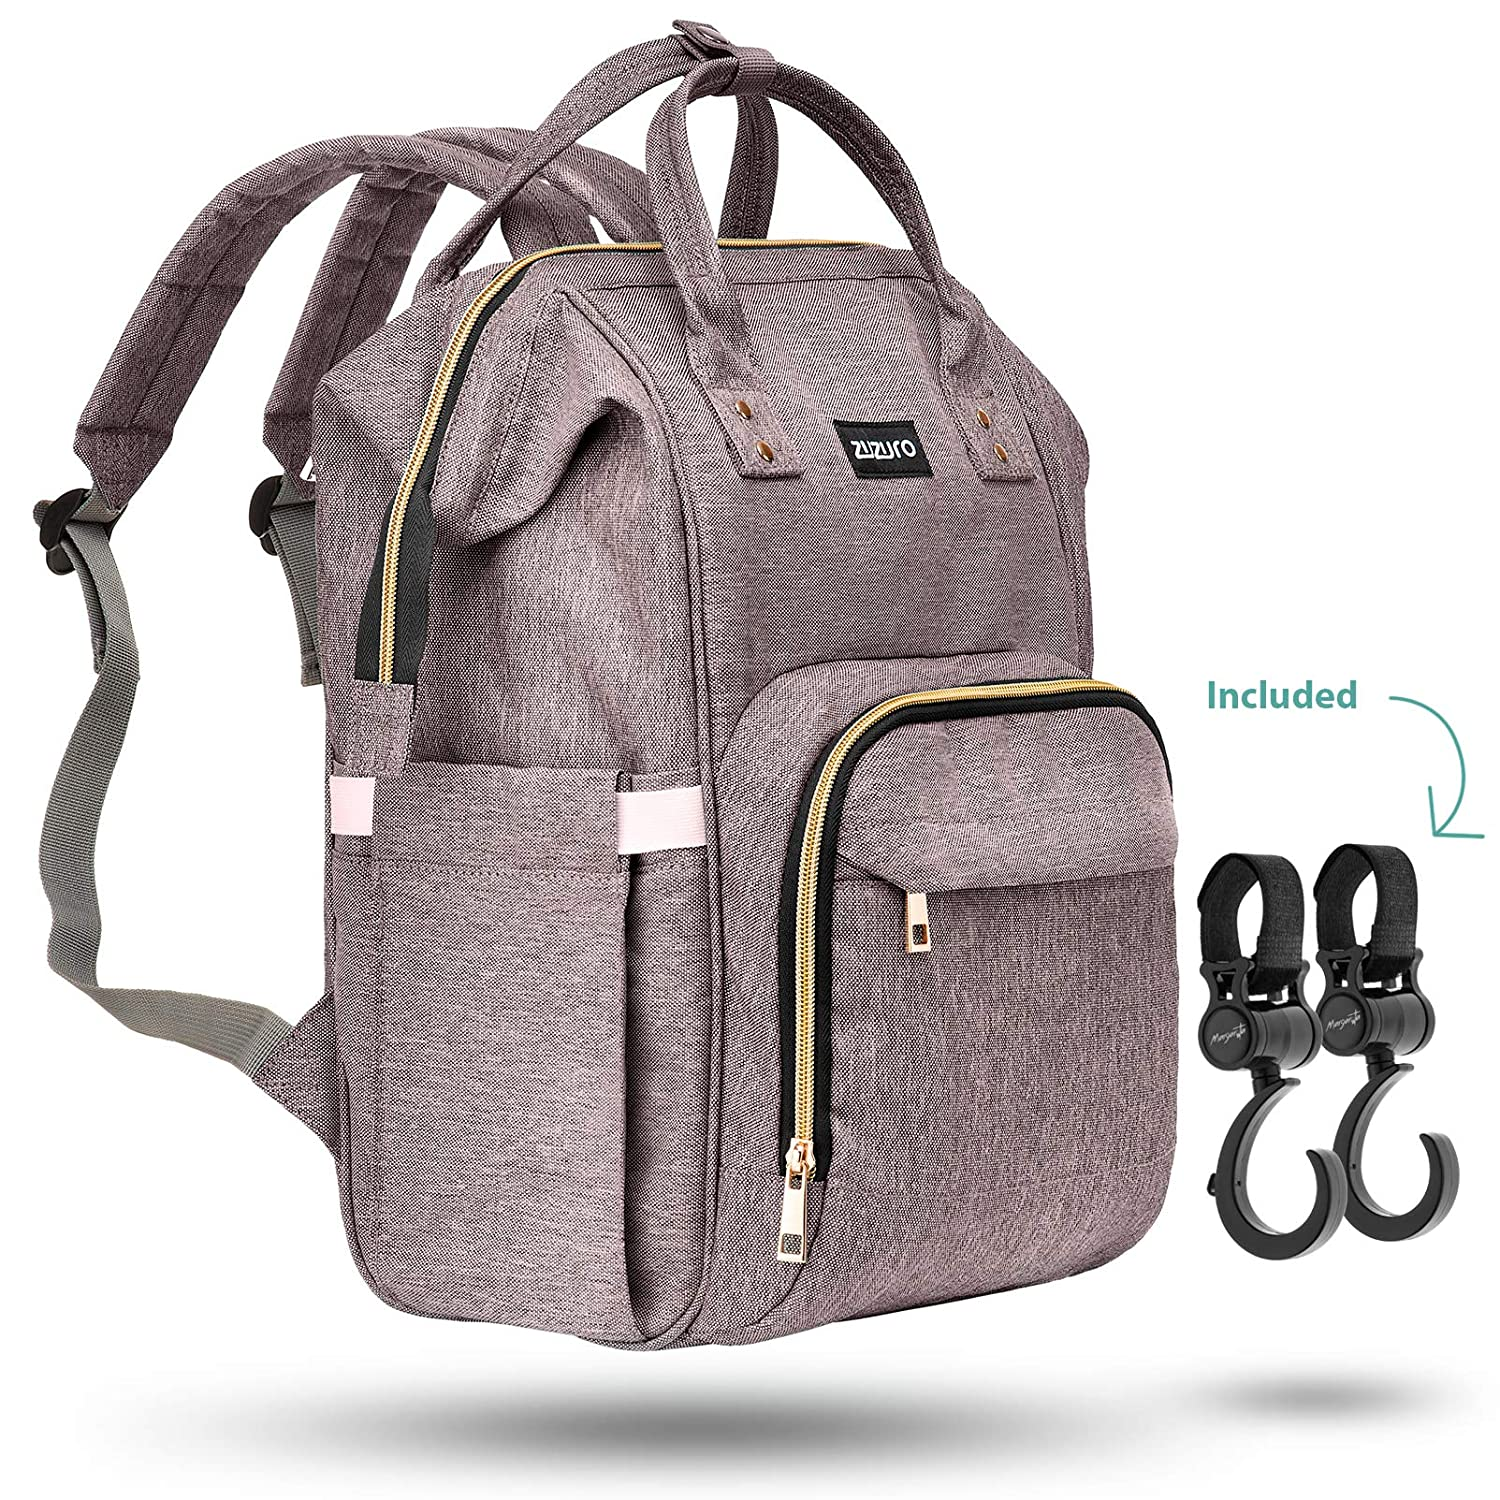 Zuzuro Diaper Bag - Baby Bag - Waterproof Backpack w/Large Capacity & Multiple Pockets for Organization. Ideal for Travel Nappy Bags - W/Insulated Bottle Pocket. 2 Stroller Hooks Incl. (Silver Gray)